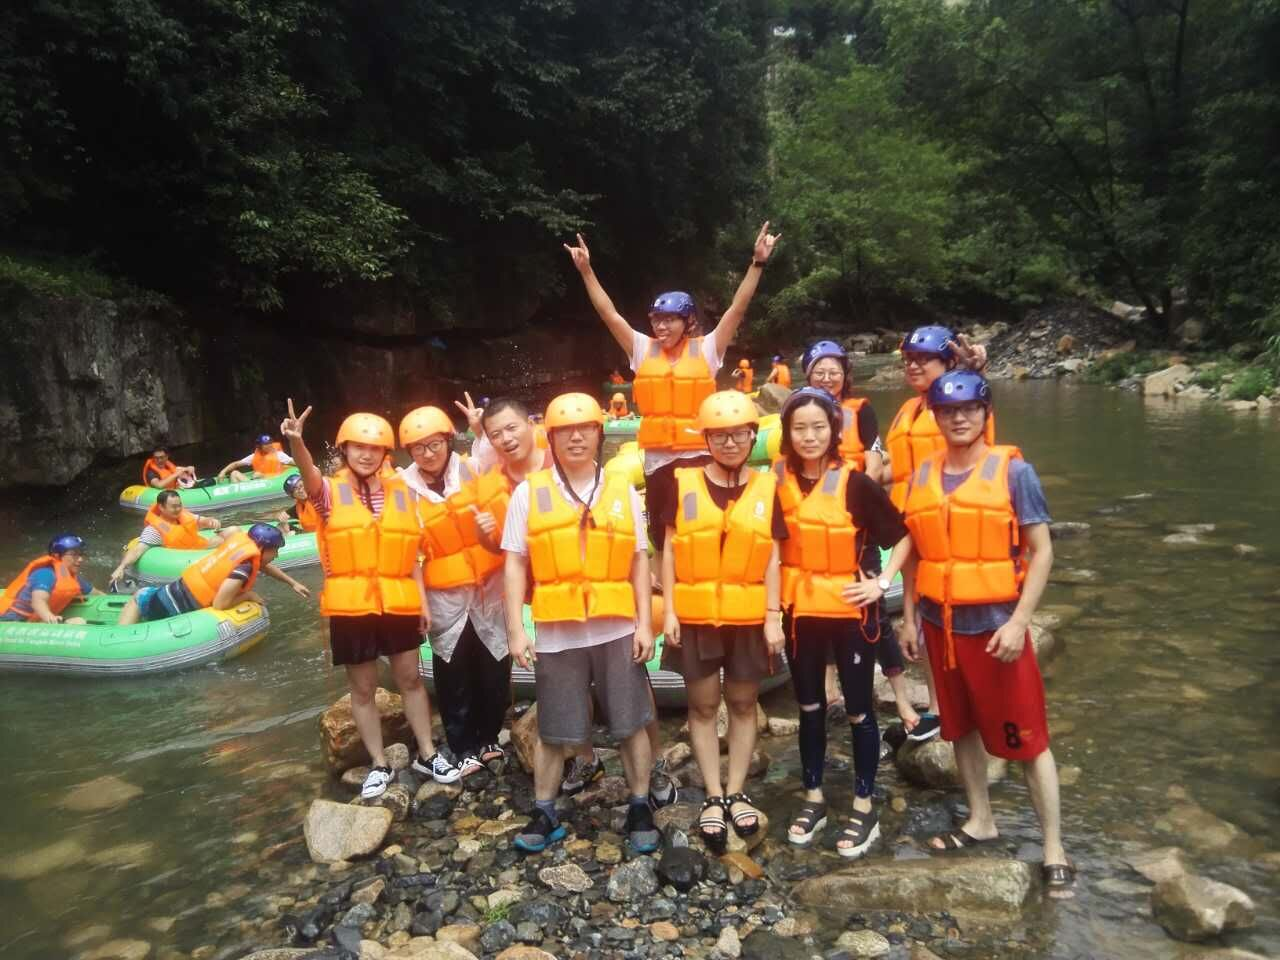 Zhejiang Putian Integrated Housing Co., Ltd. Year's team building activities